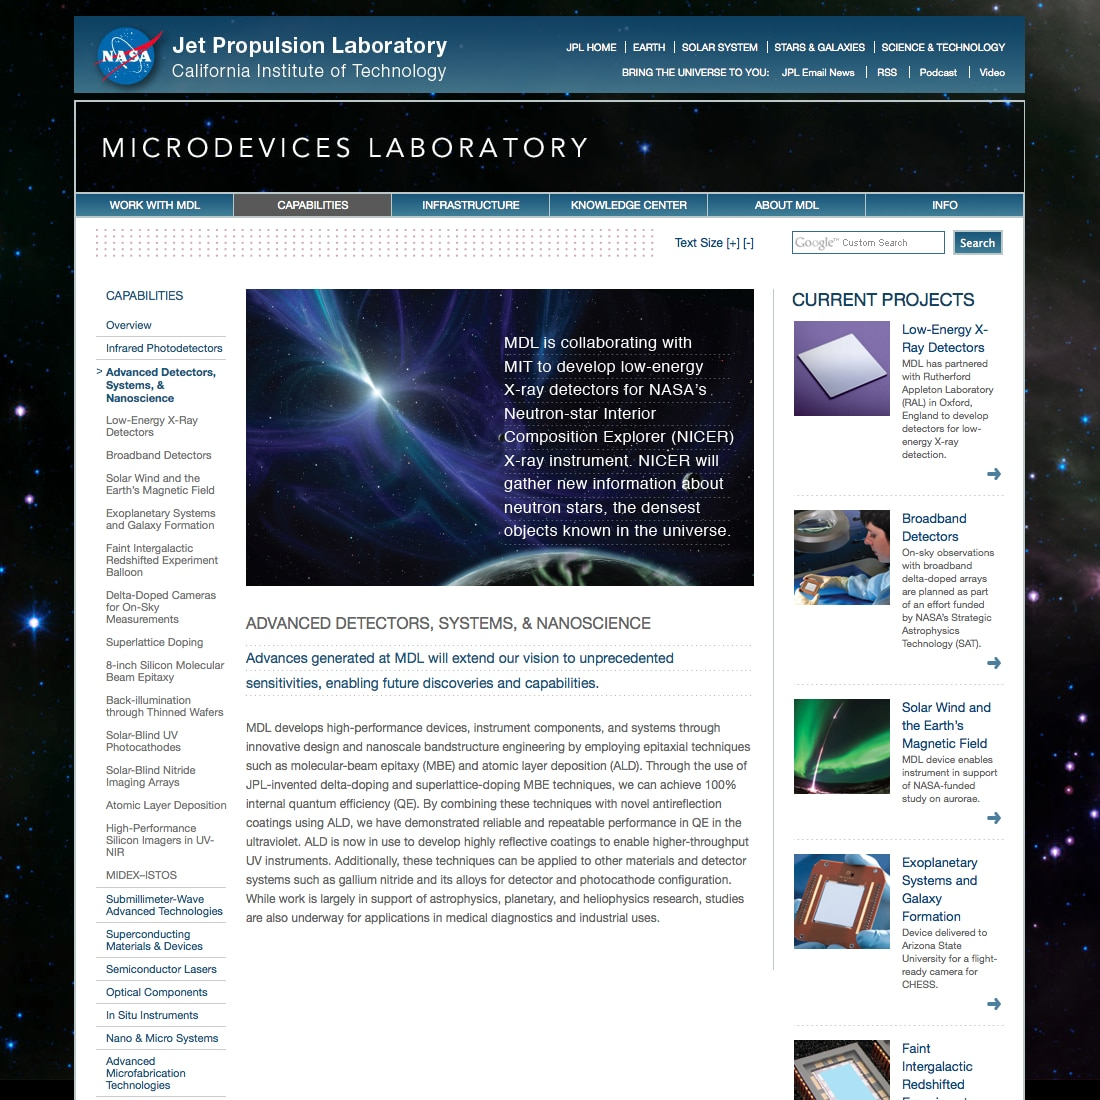 Advanced Detectors, Systems, & Nanoscience | Capabilities | Microdevices Laboratory | NASA Jet Propulsion Laboratory California Institute of Technology